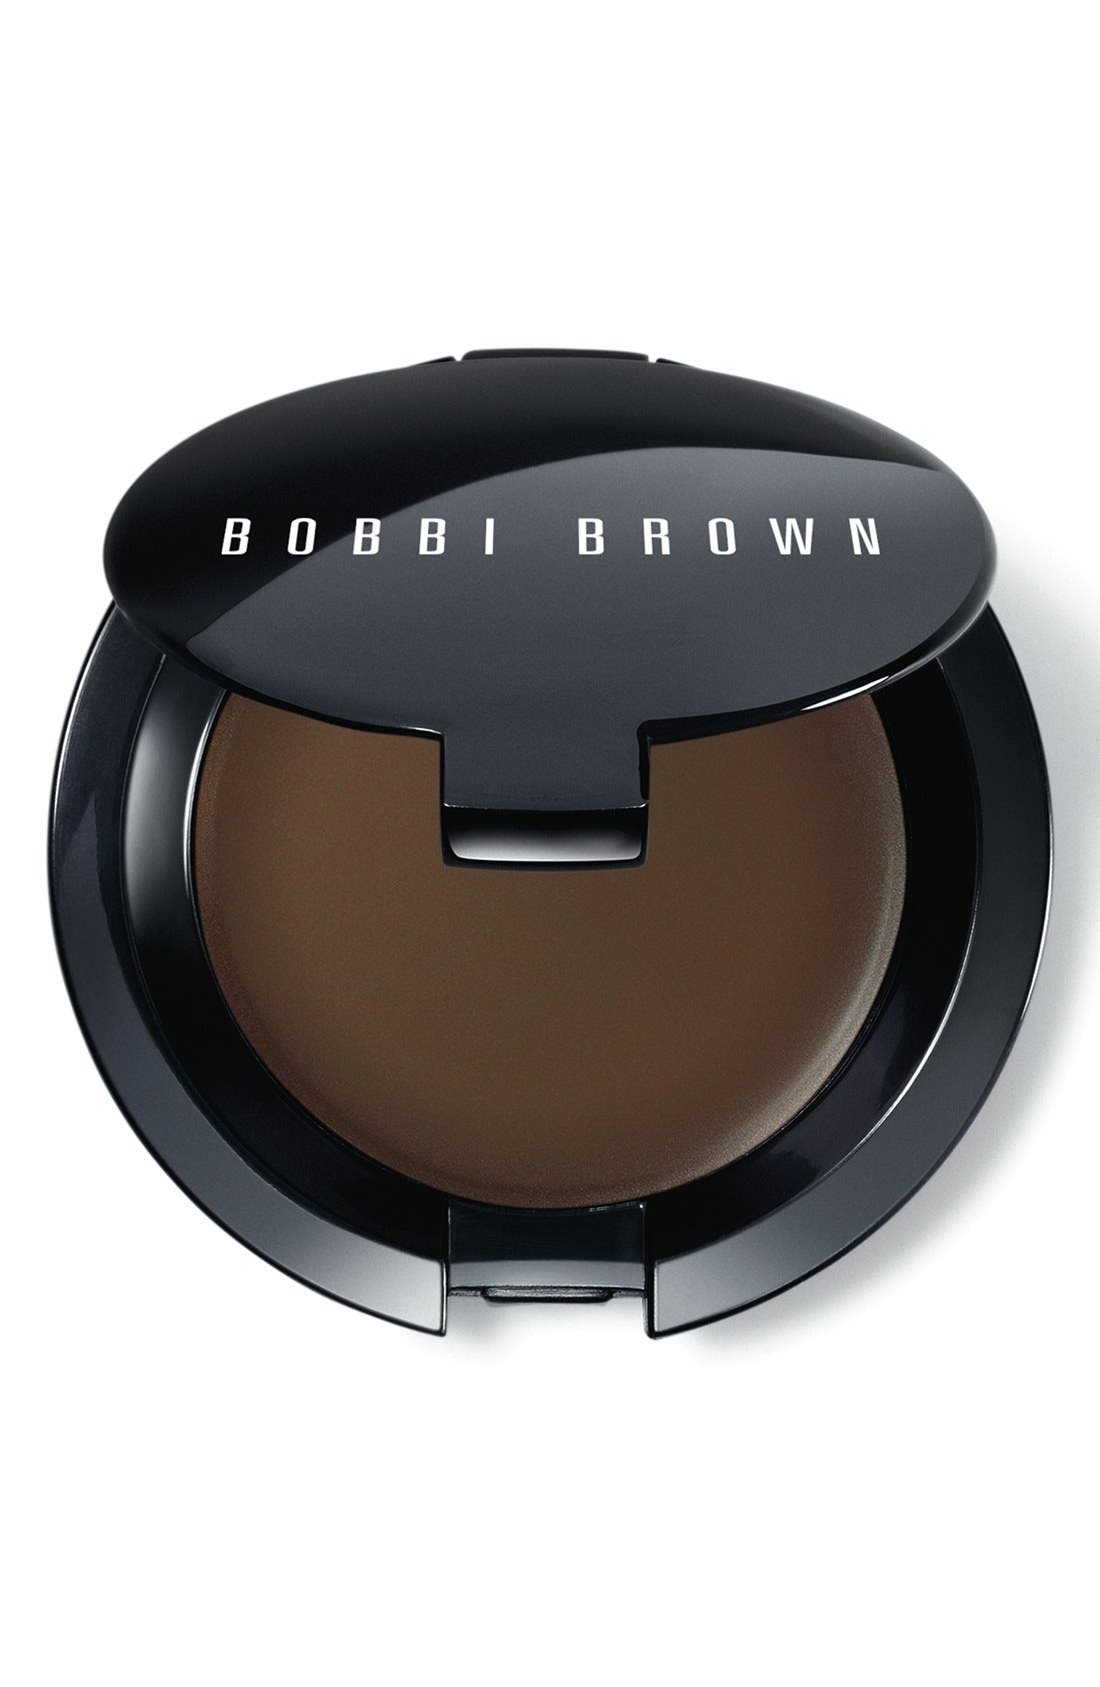 Bobbi Brown Long-Wear Brow Gel